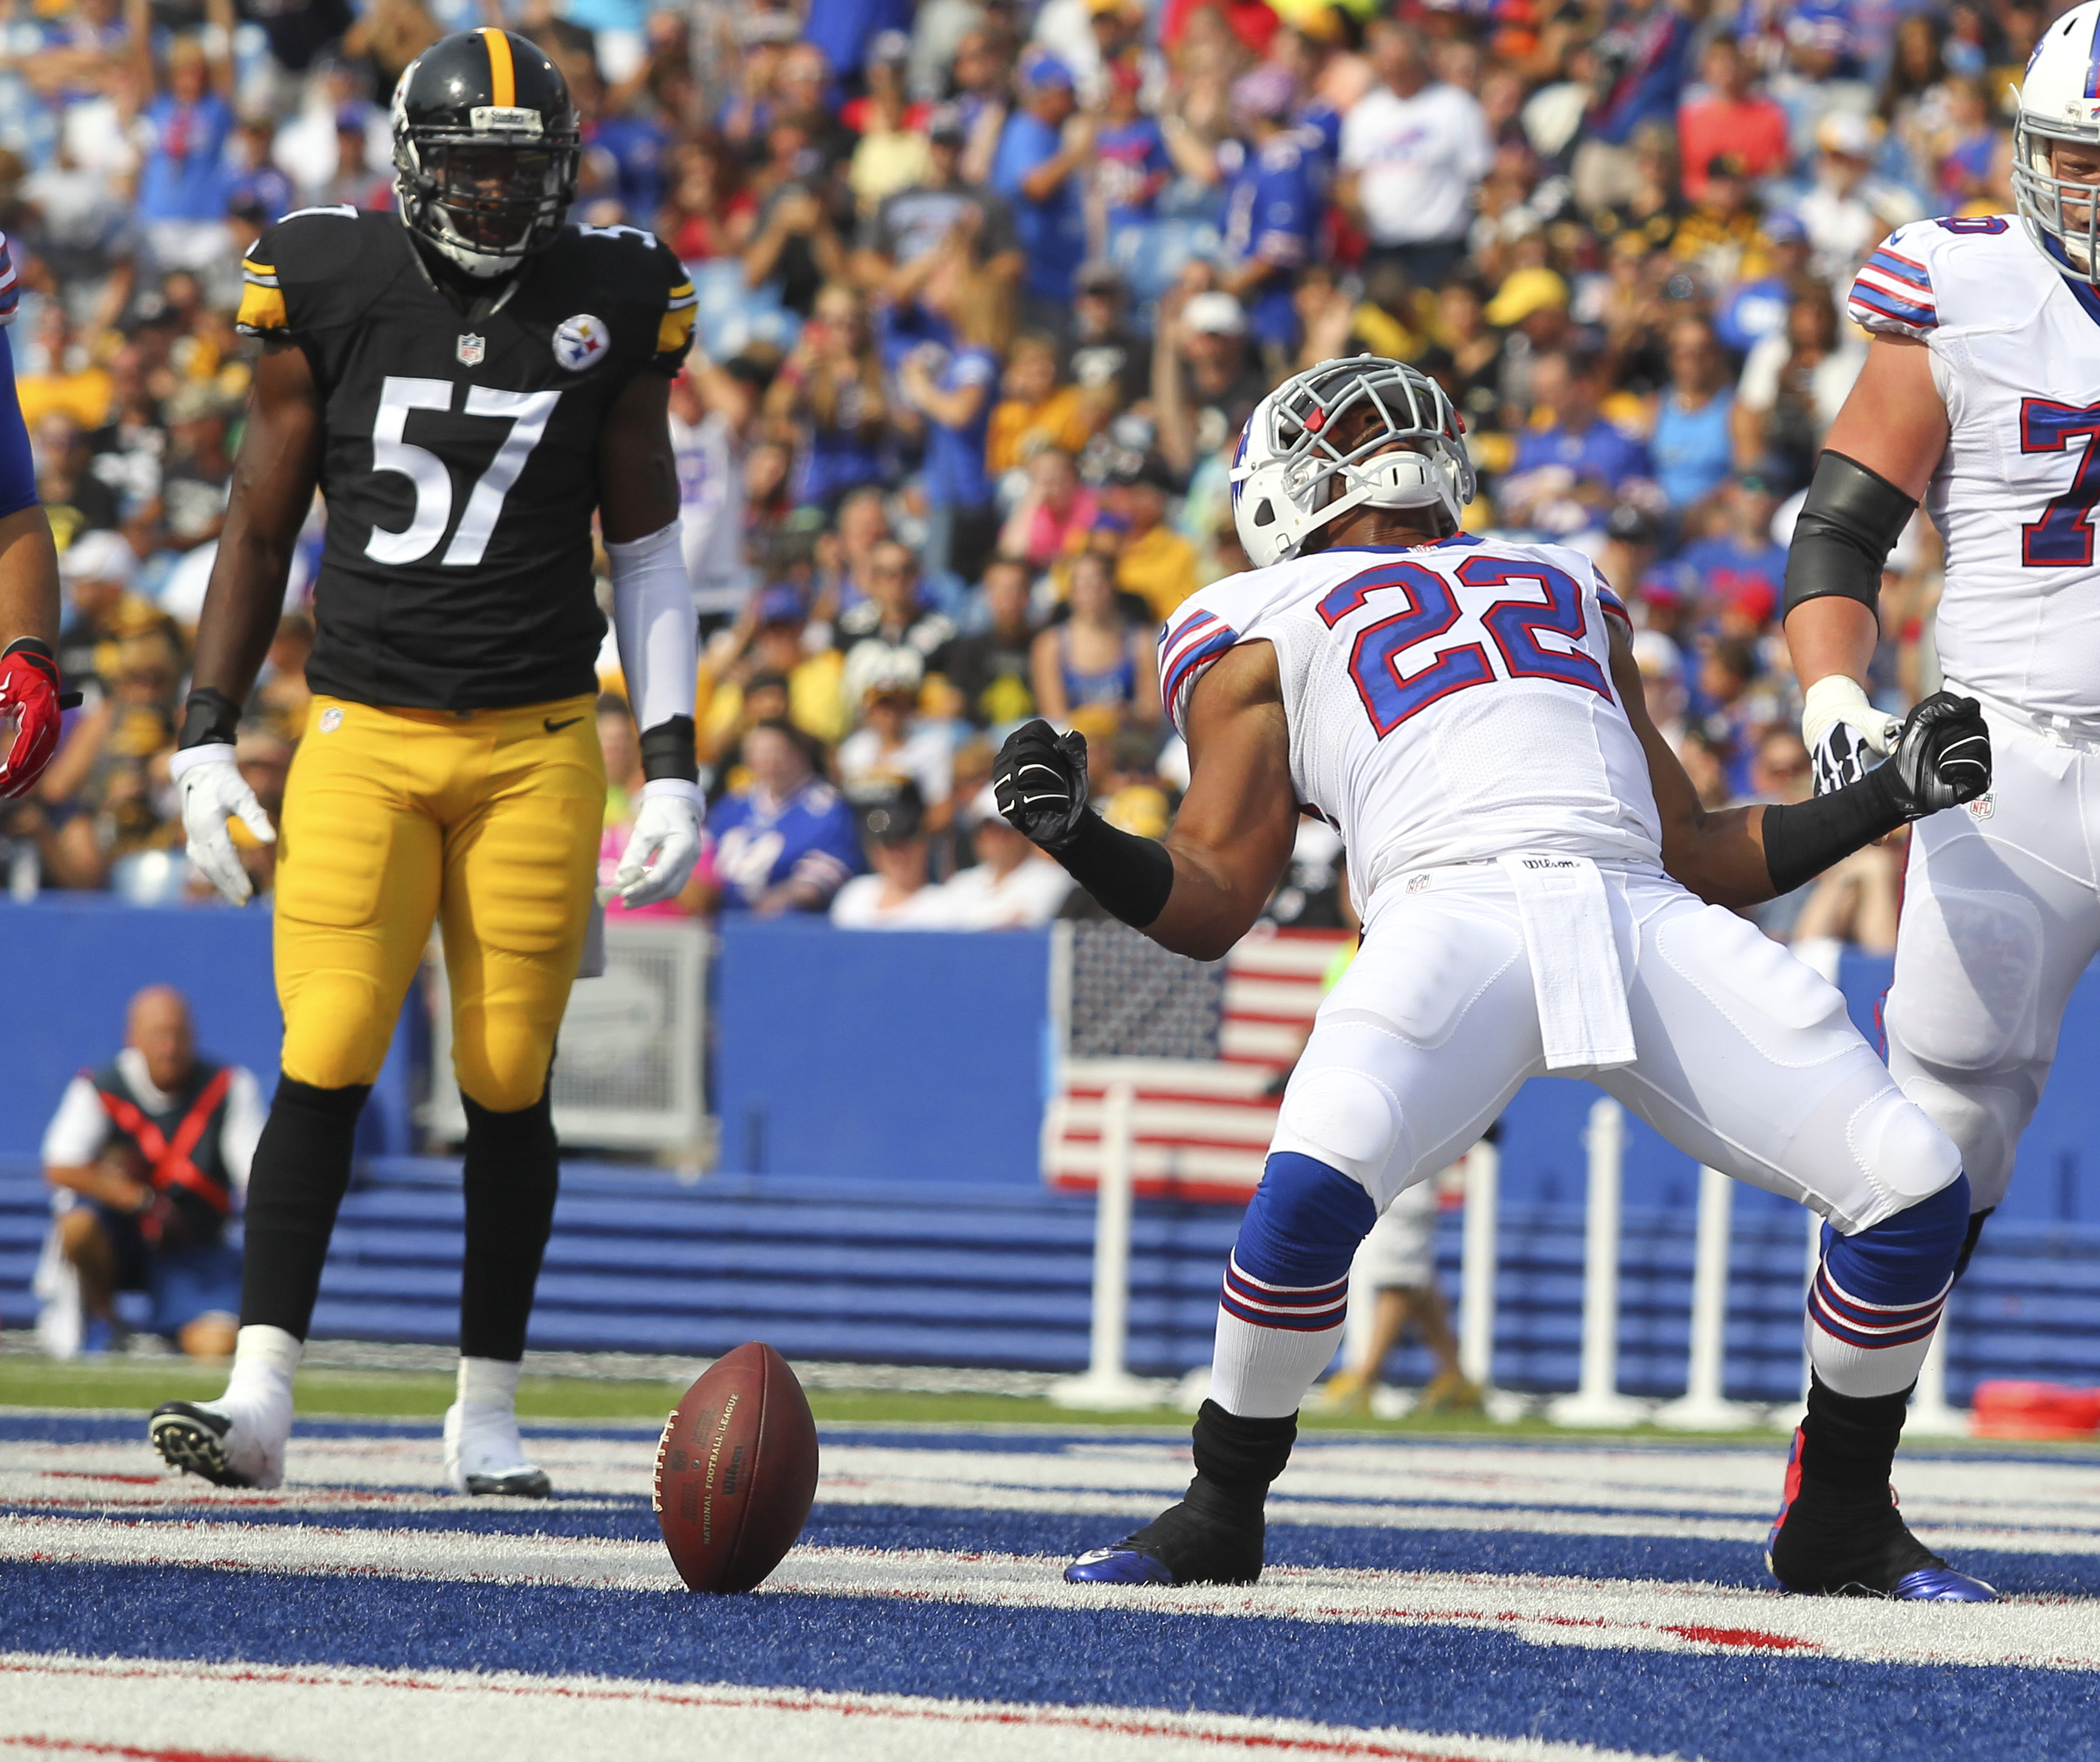 Buffalo Bills running back Fred Jackson (22) celebrates his touchdown in front of Pittsburgh Steelers inside linebacker Terence Garvin (57) during the first half of a preseason NFL football game on Saturday, Aug. 29, 2015, in Orchard Park, N.Y. (AP Photo/